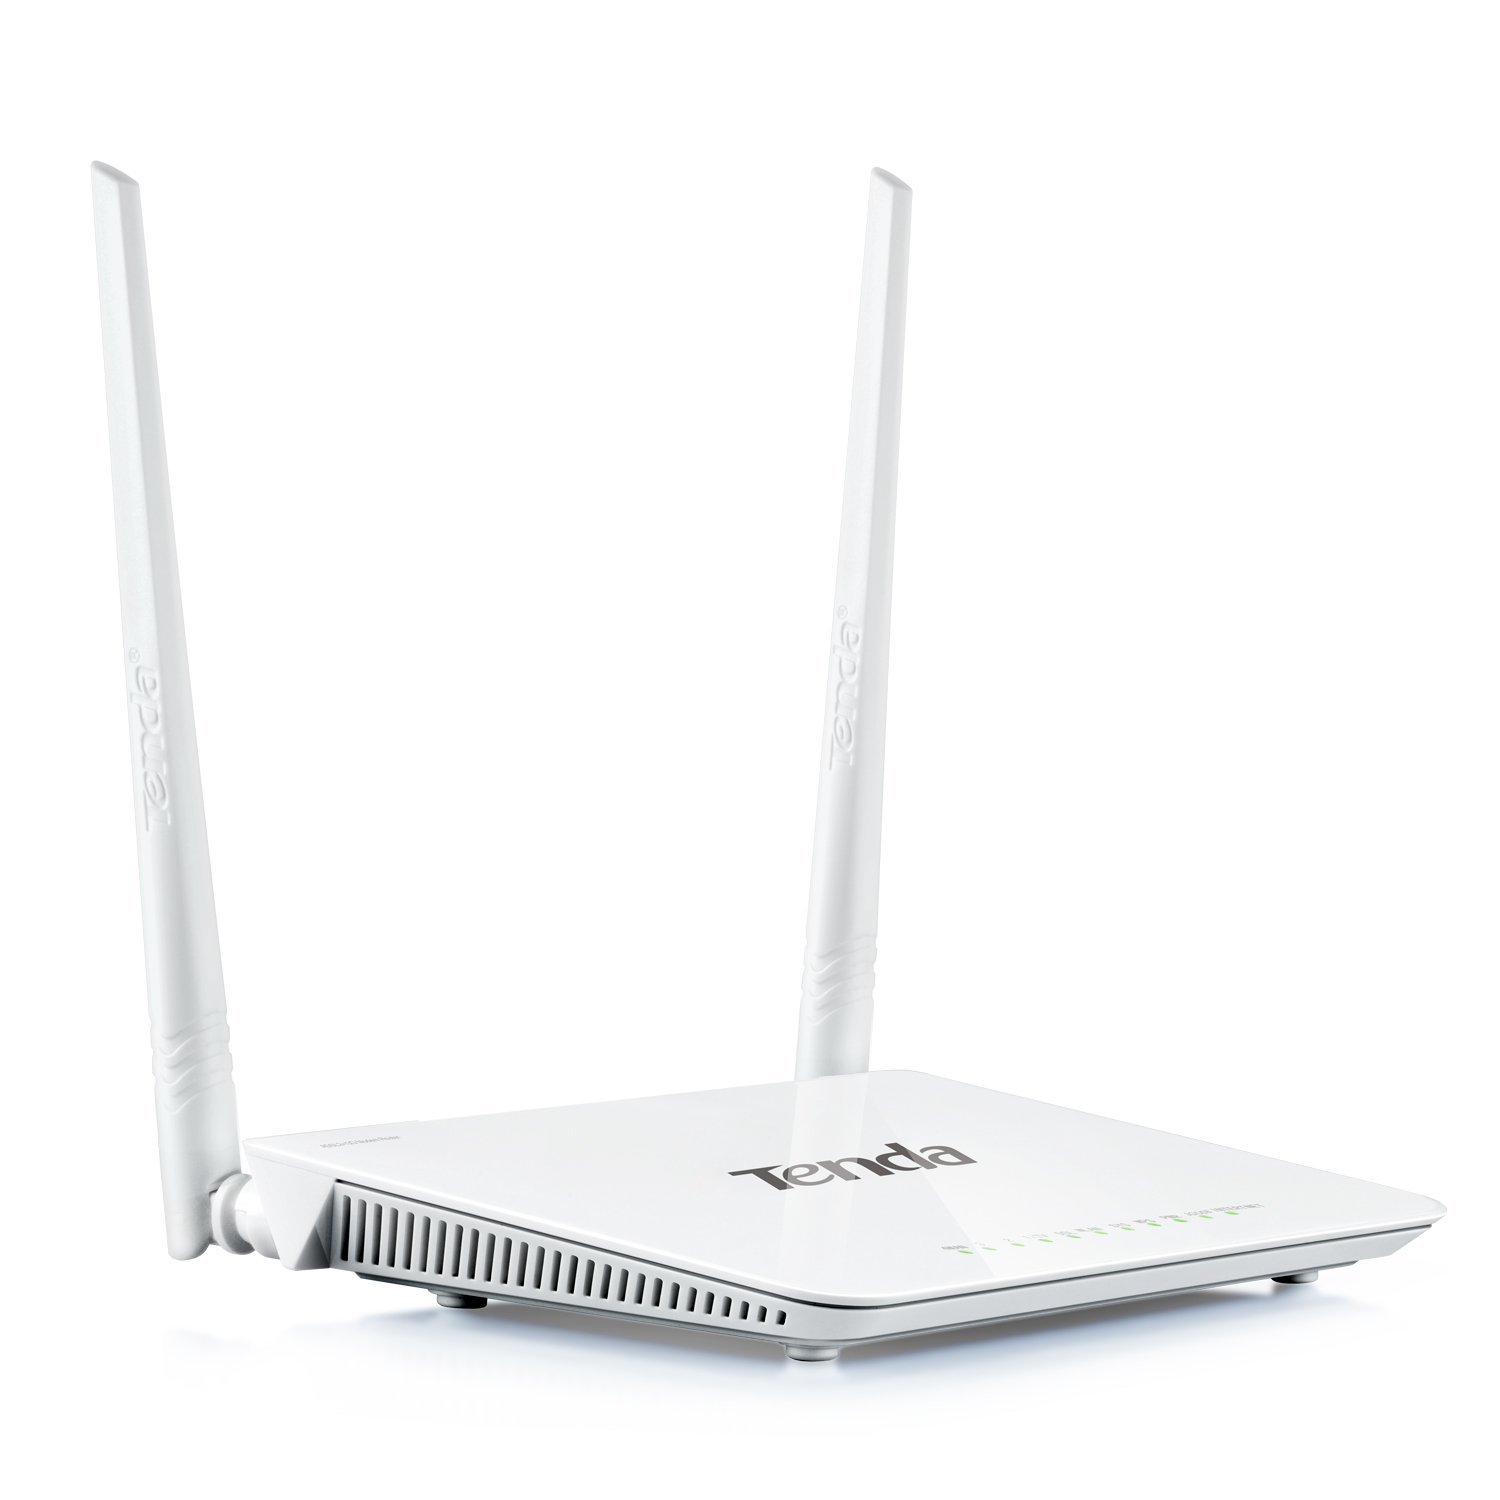 TENDA TE D303 Wireless Modem Router